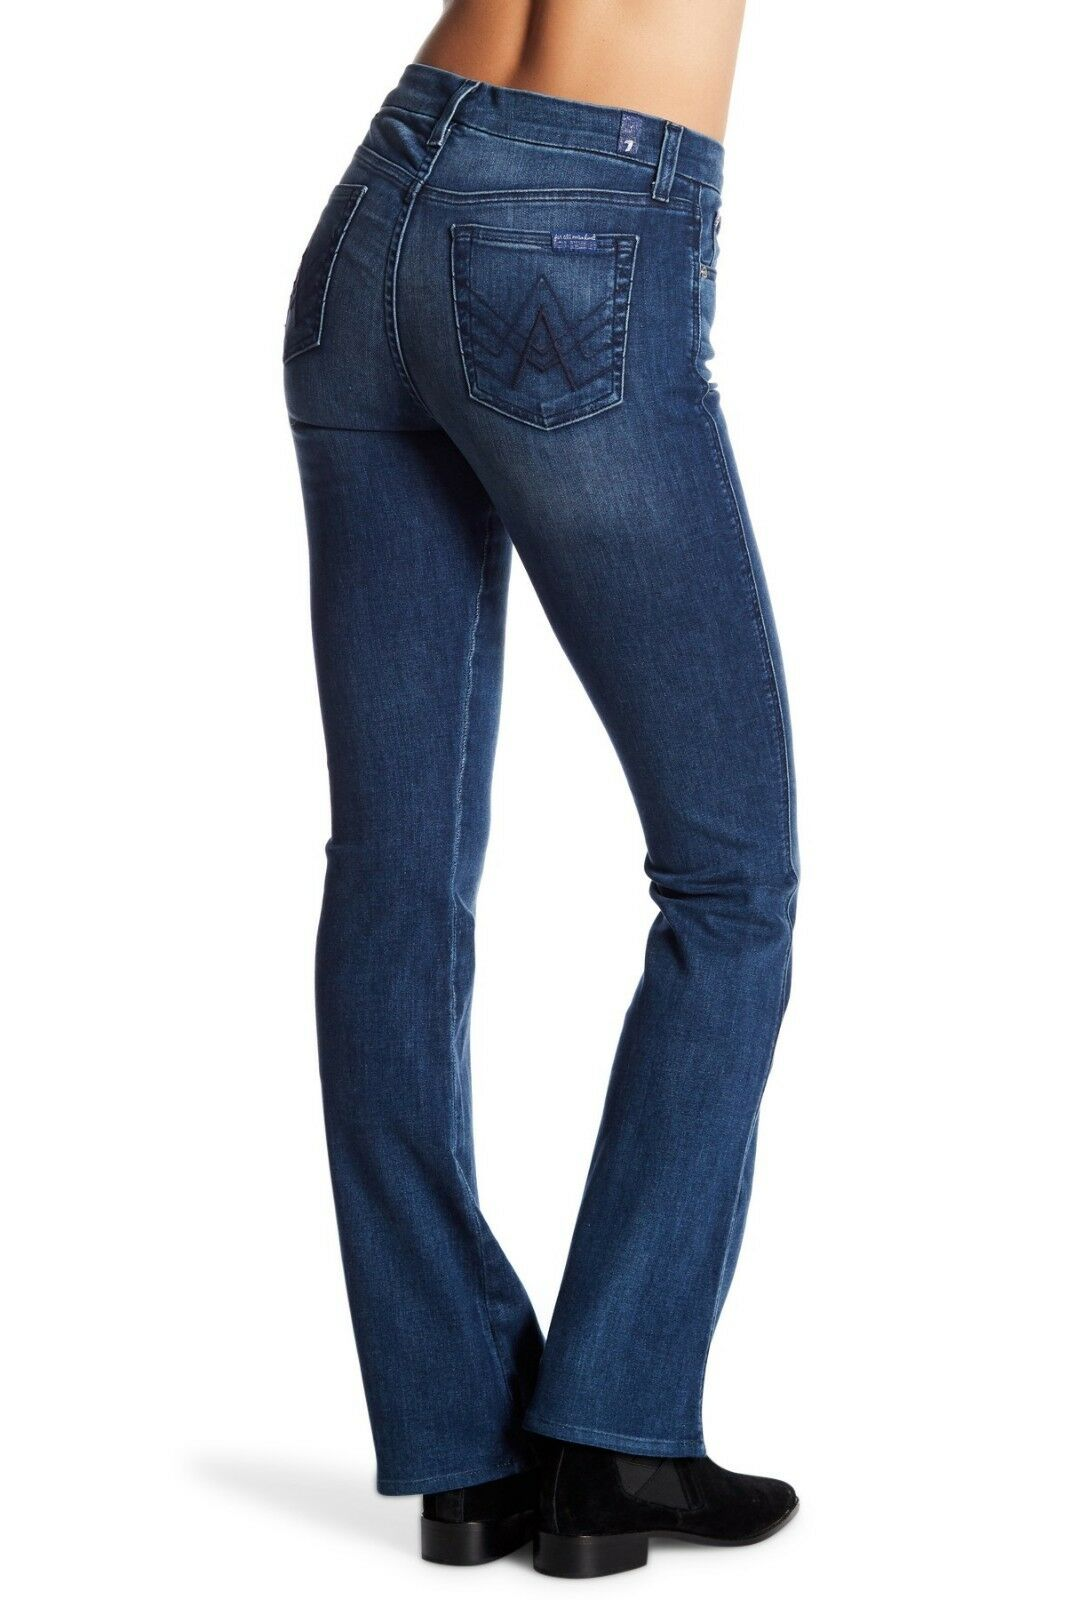 7 For All Mankind Womens Boot Cut Flare Jeans size 28